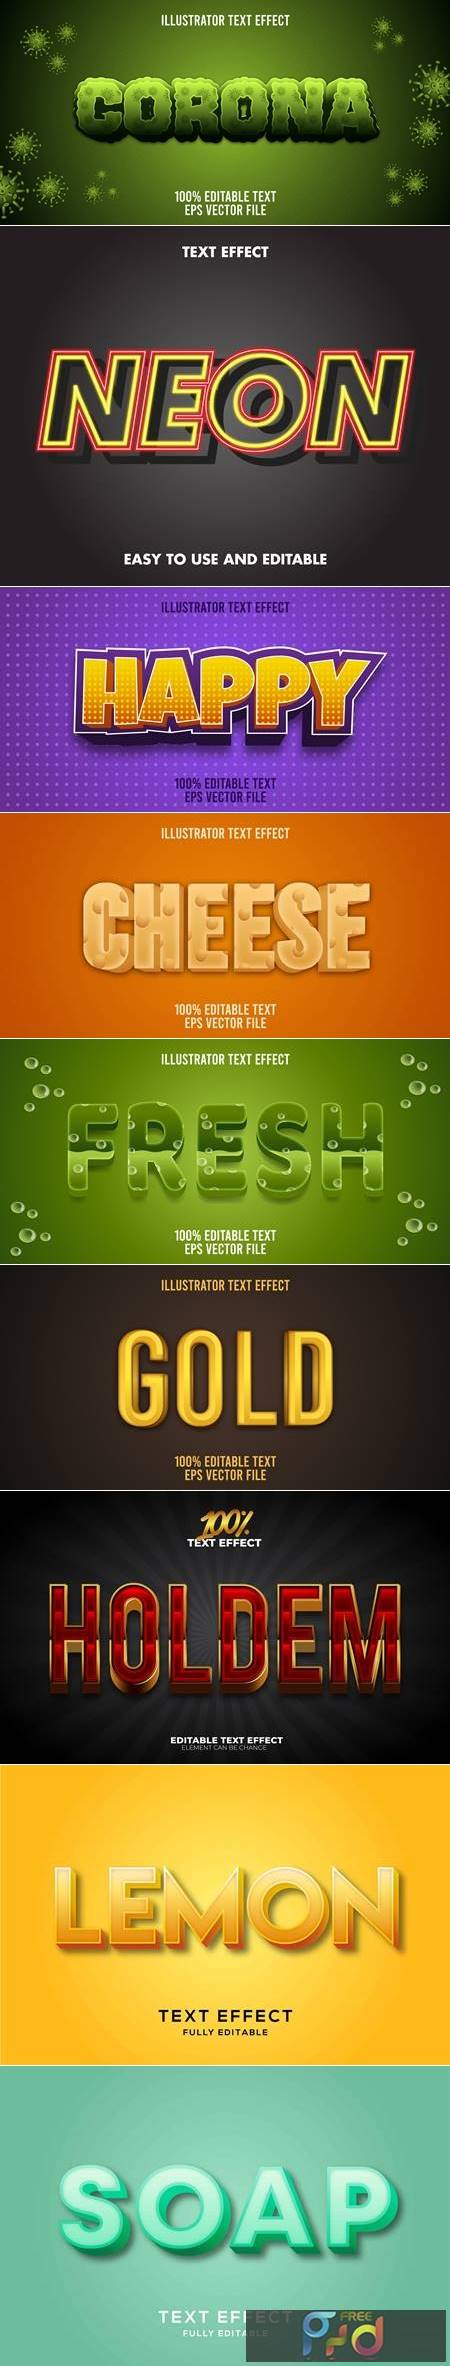 Editable font effect text collection illustration design 56 1